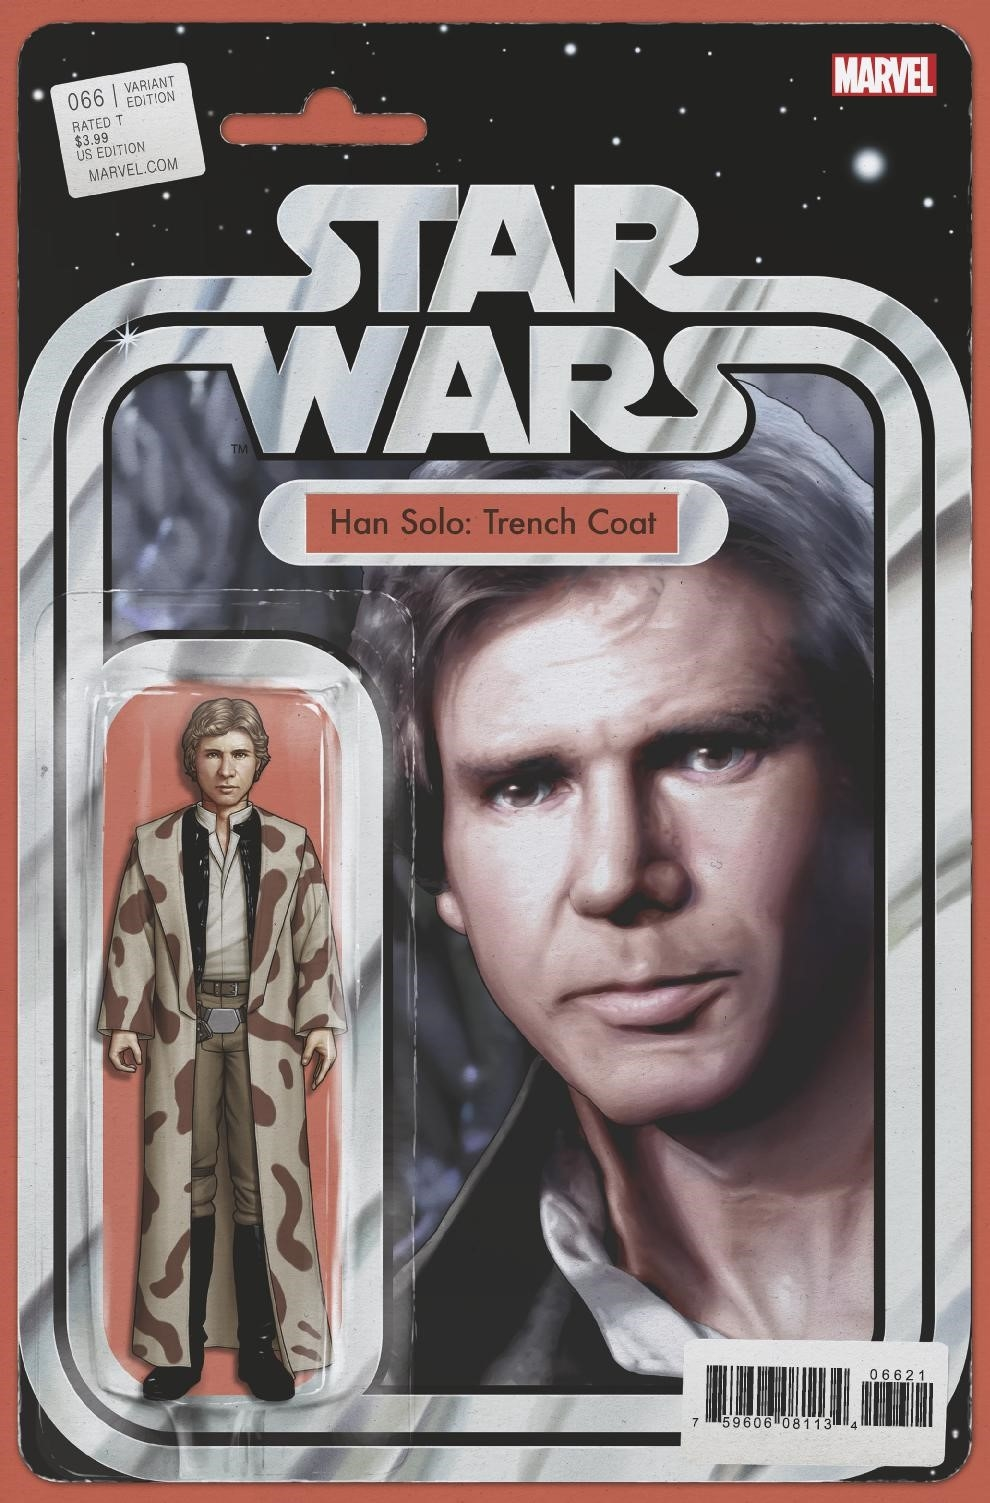 STAR WARS #66 CHRISTOPHER ACTION FIGURE VAR